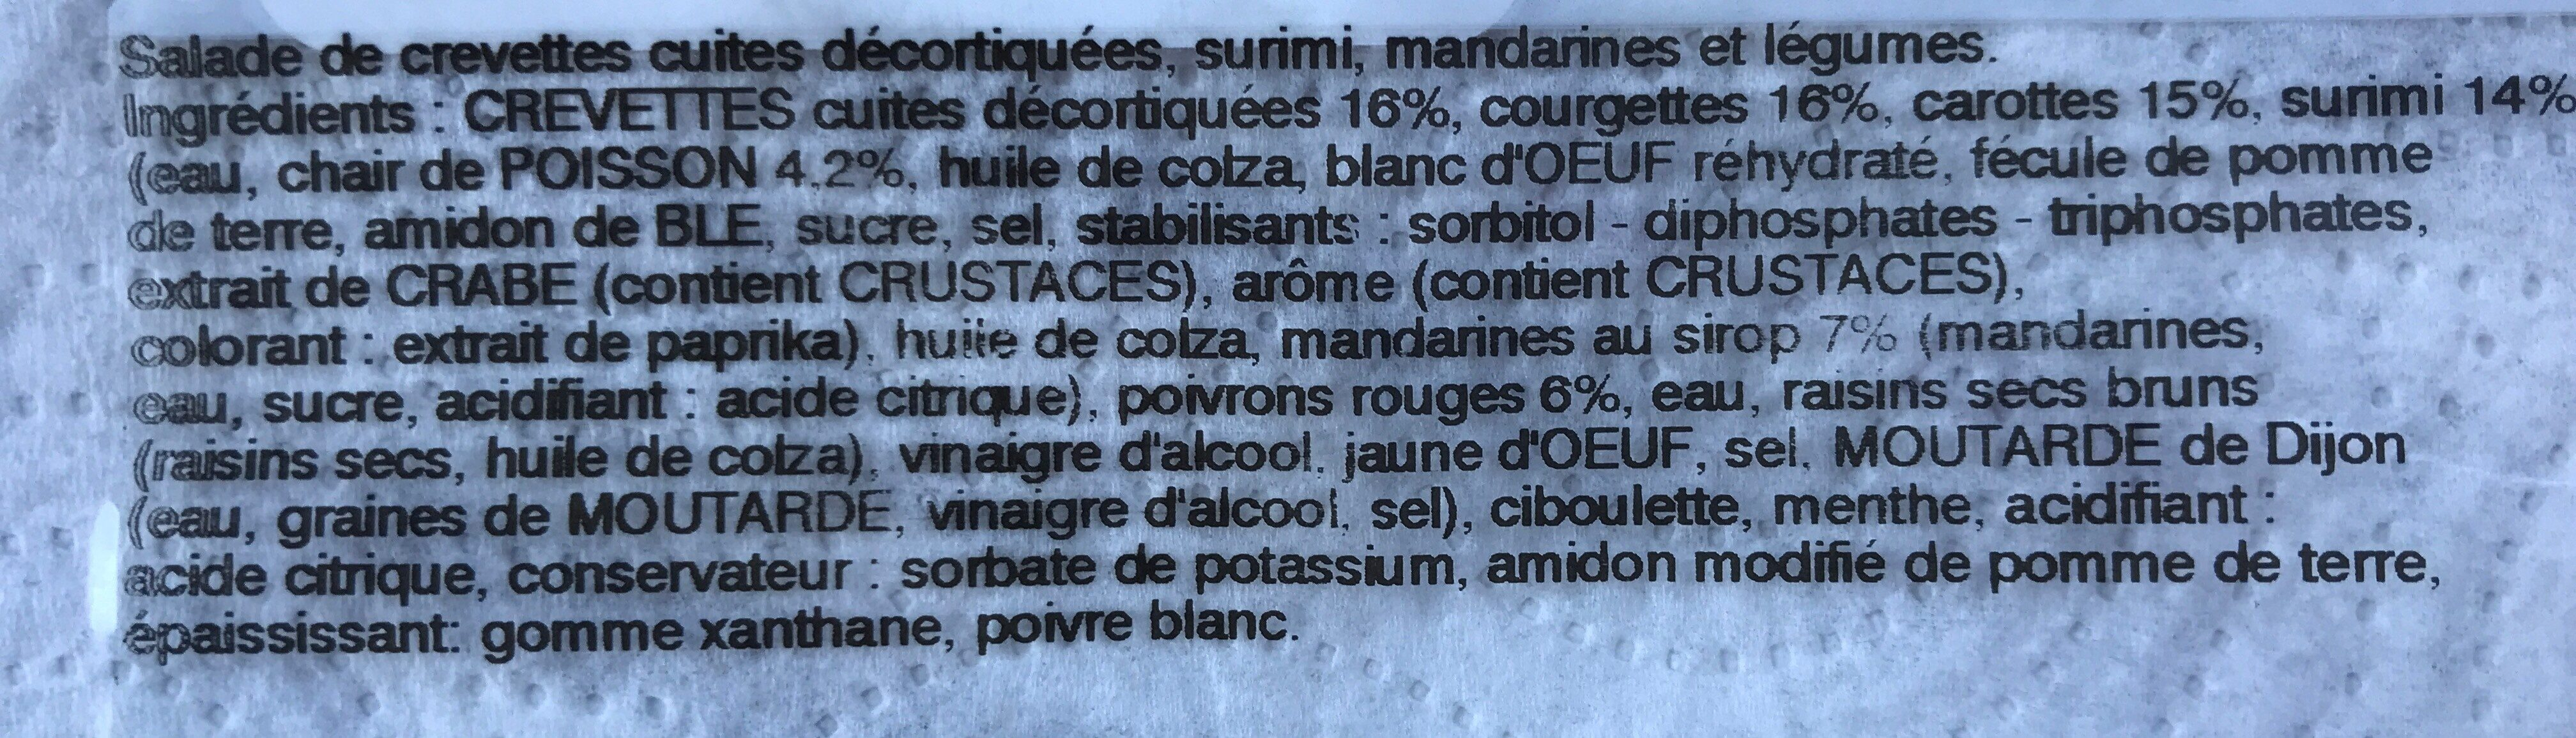 Salade de gambas aux mandarines - Ingredients - fr